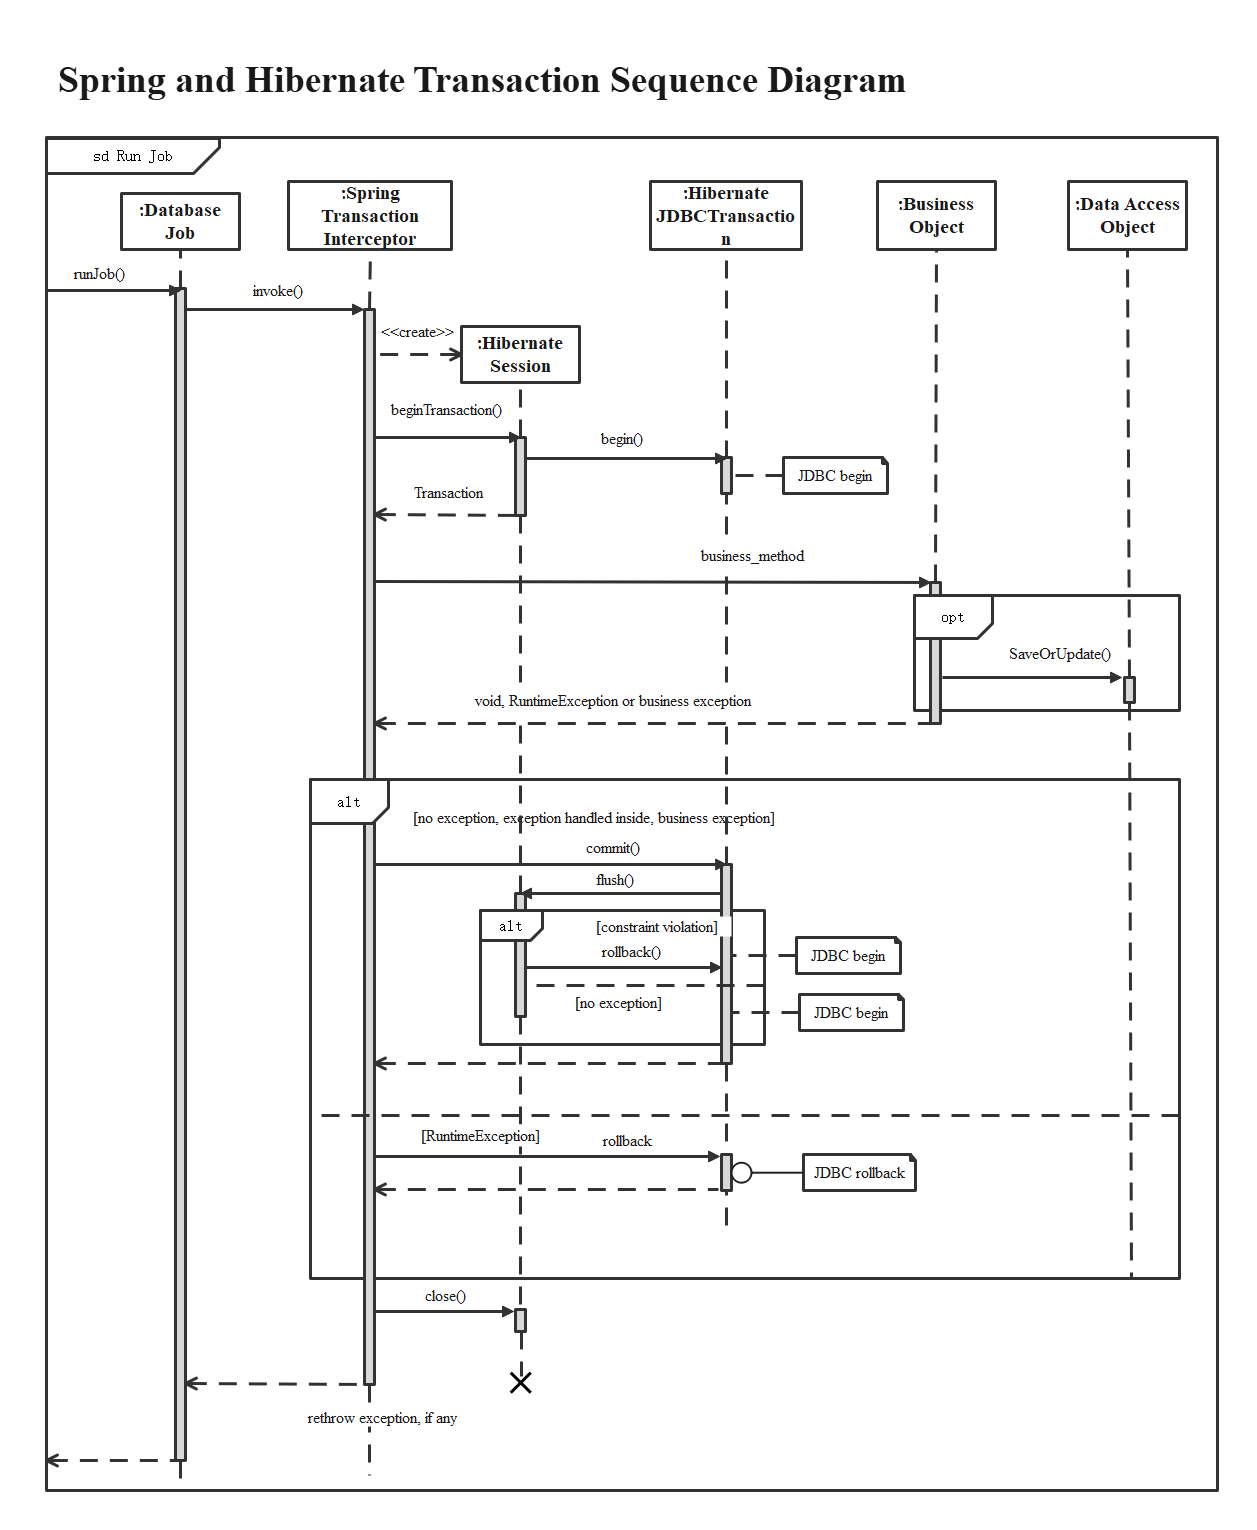 Spring and Hibernate Transaction Sequence Diagram